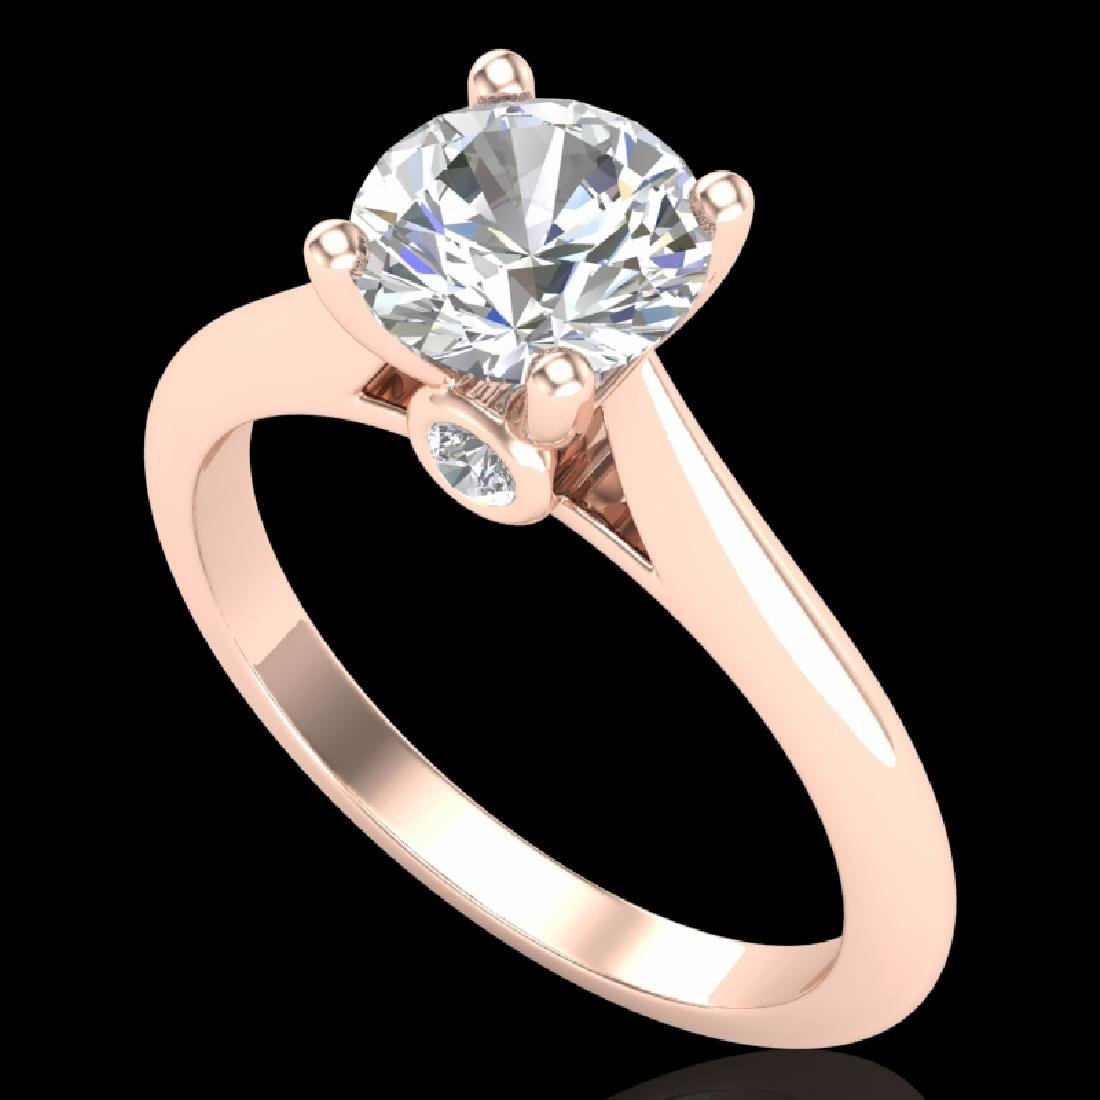 1.36 CTW VS/SI Diamond Solitaire Art Deco Ring 18K Rose